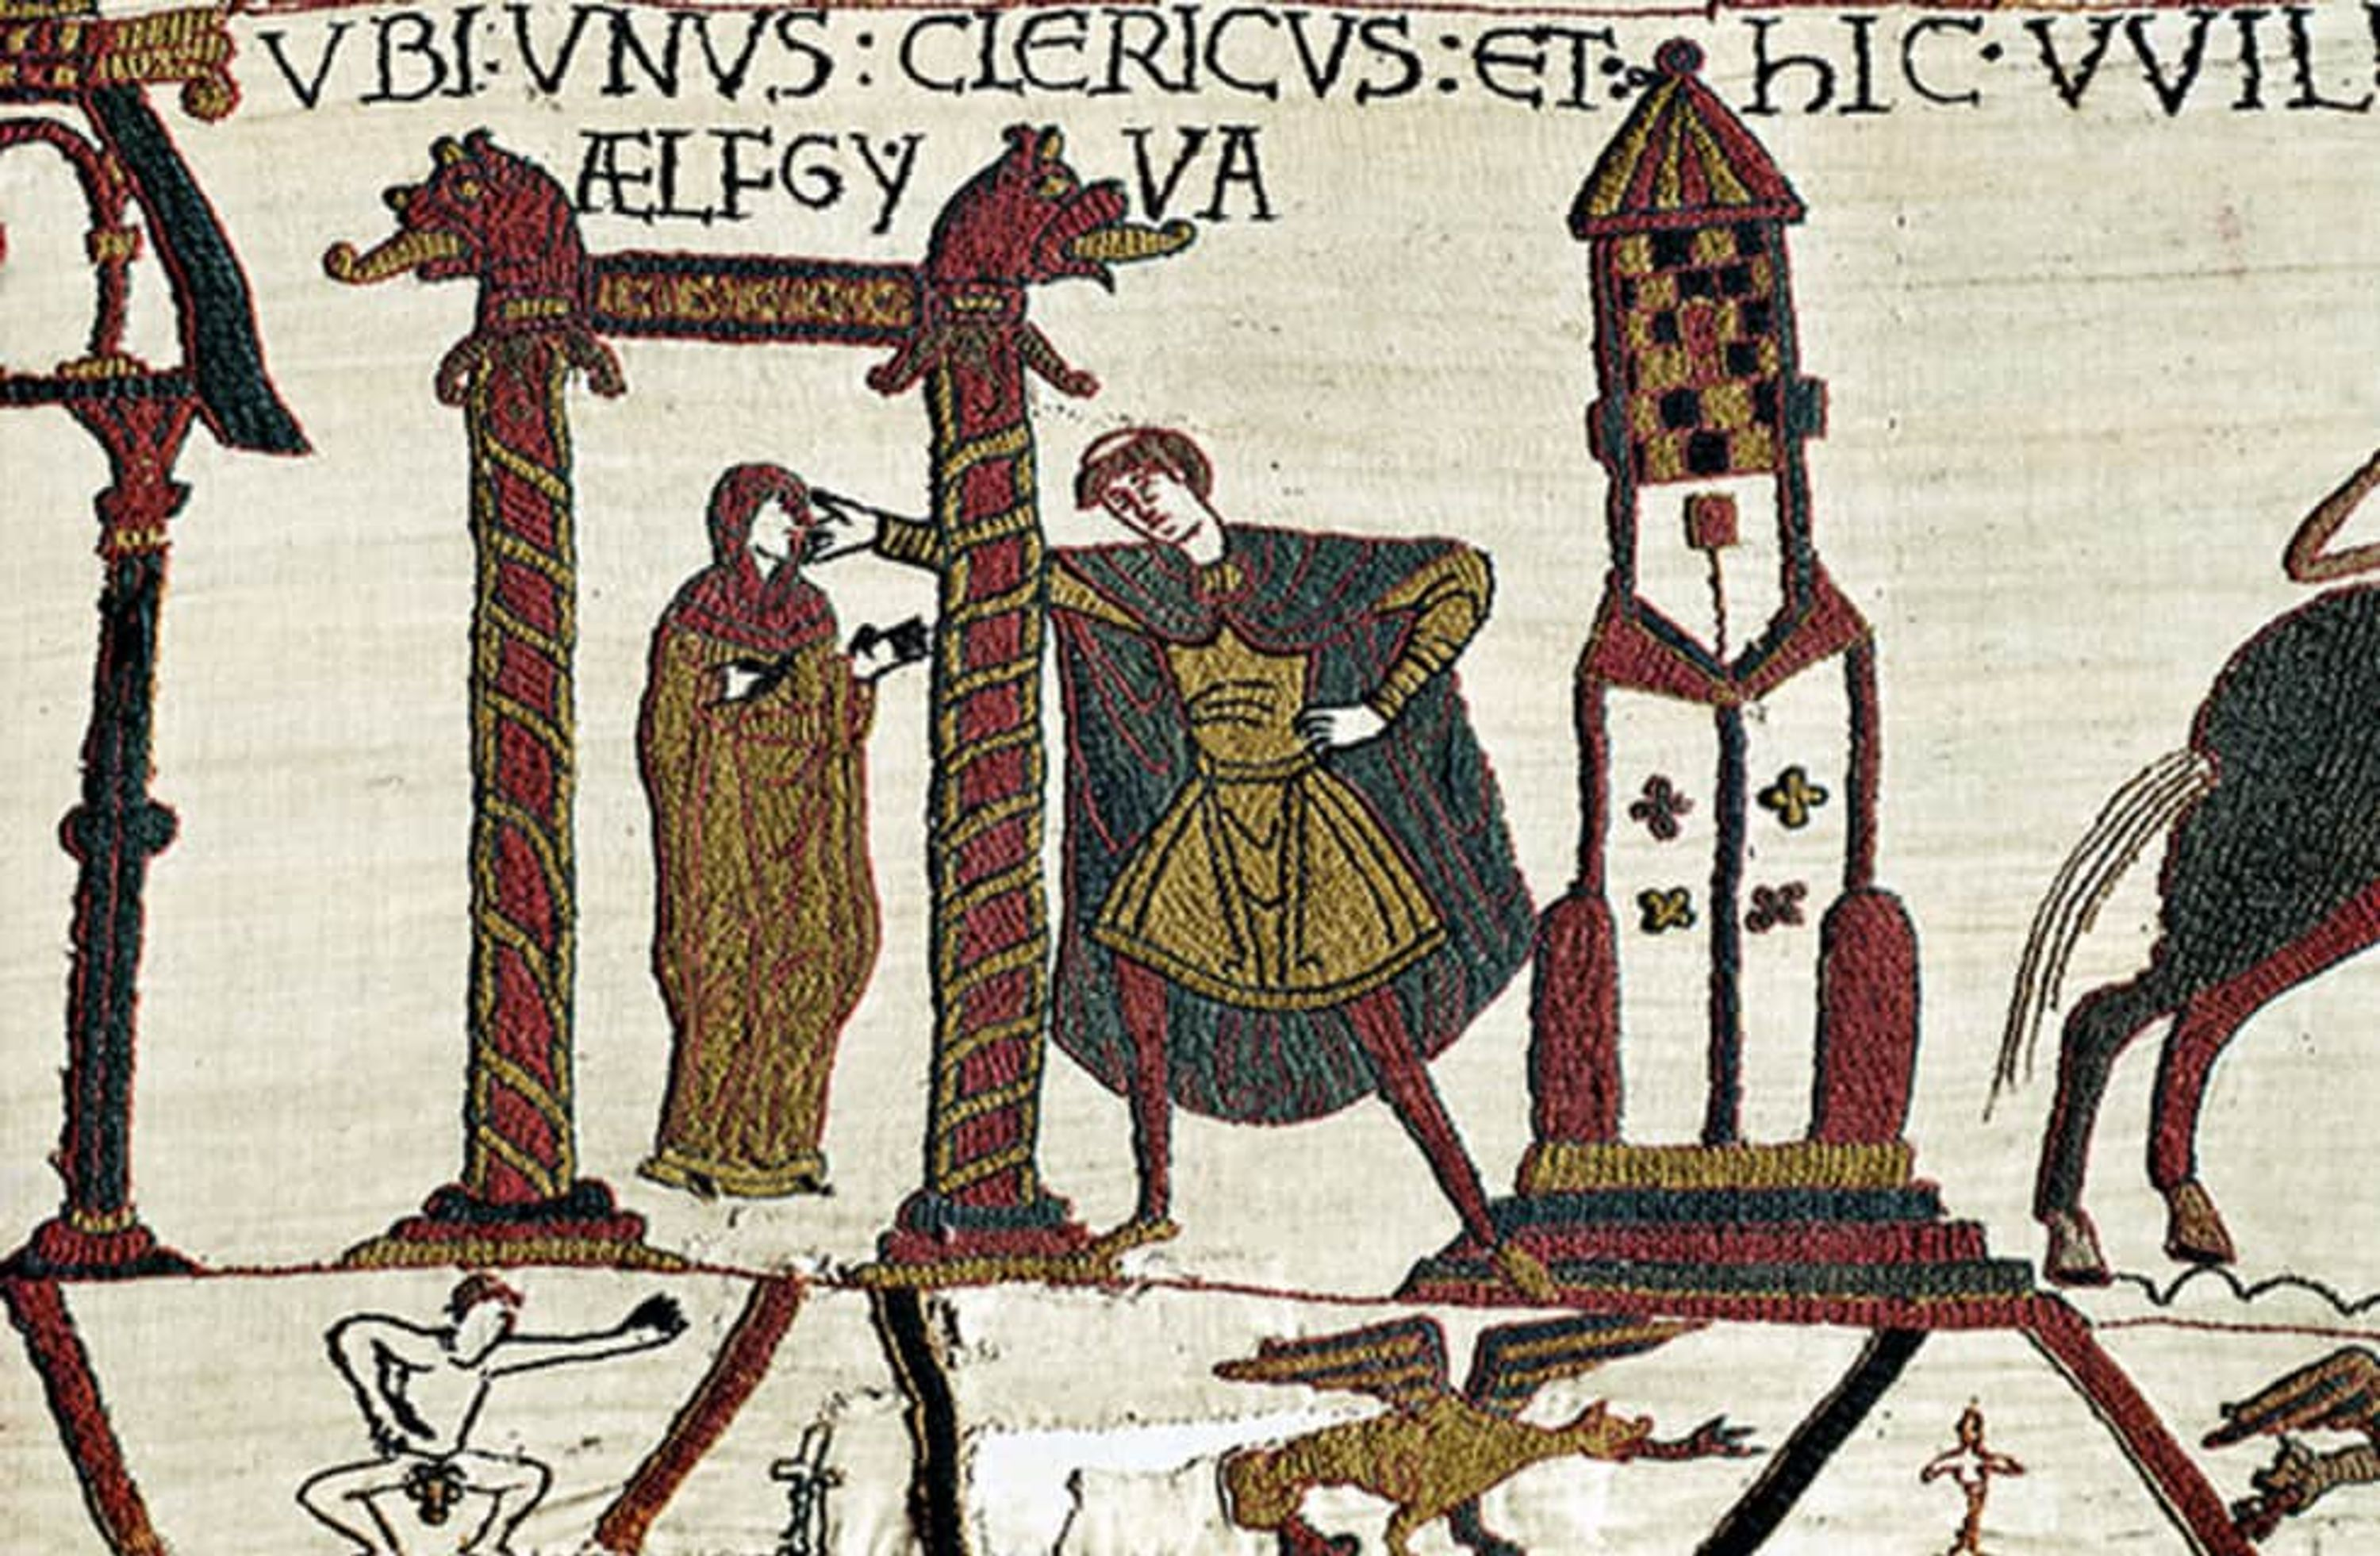 A fragment of the Bayeux Tapestry showing a man punching another man.